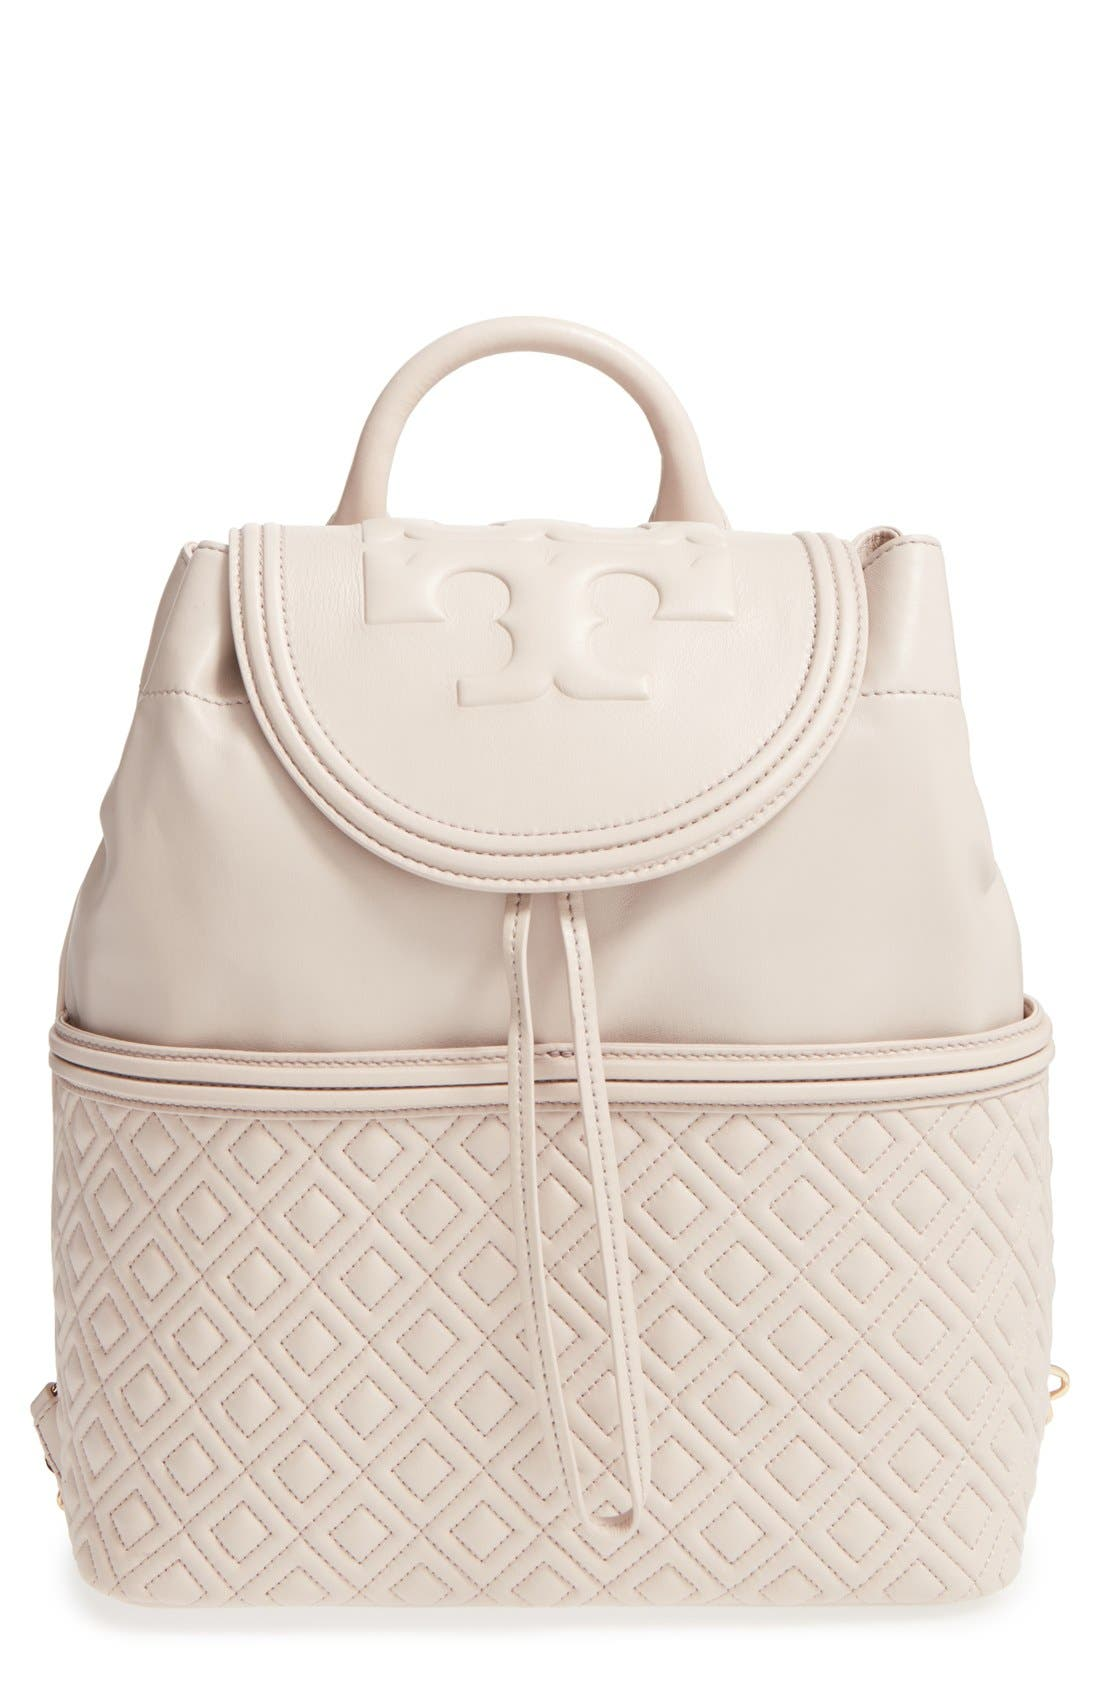 Main Image - Tory Burch 'Fleming' Quilted Lambskin Leather Backpack